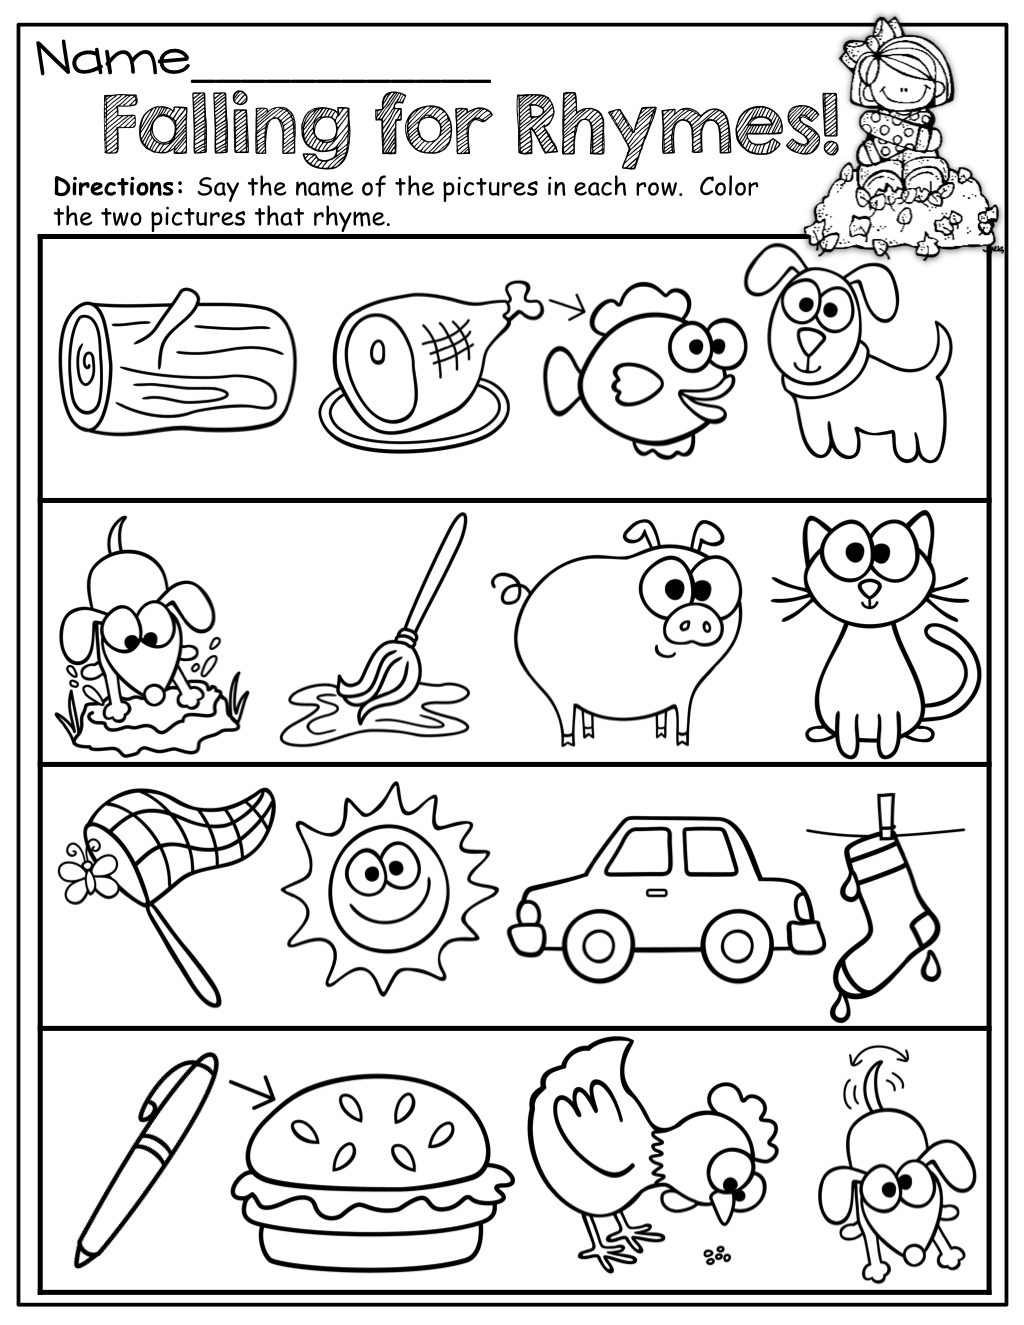 worksheet Worksheet Rhyming Words repinned by myslpmaterials com visit our page for free speech susan akins posted rhyming words to their preschool items postboard via the juxtapost bookmarklet